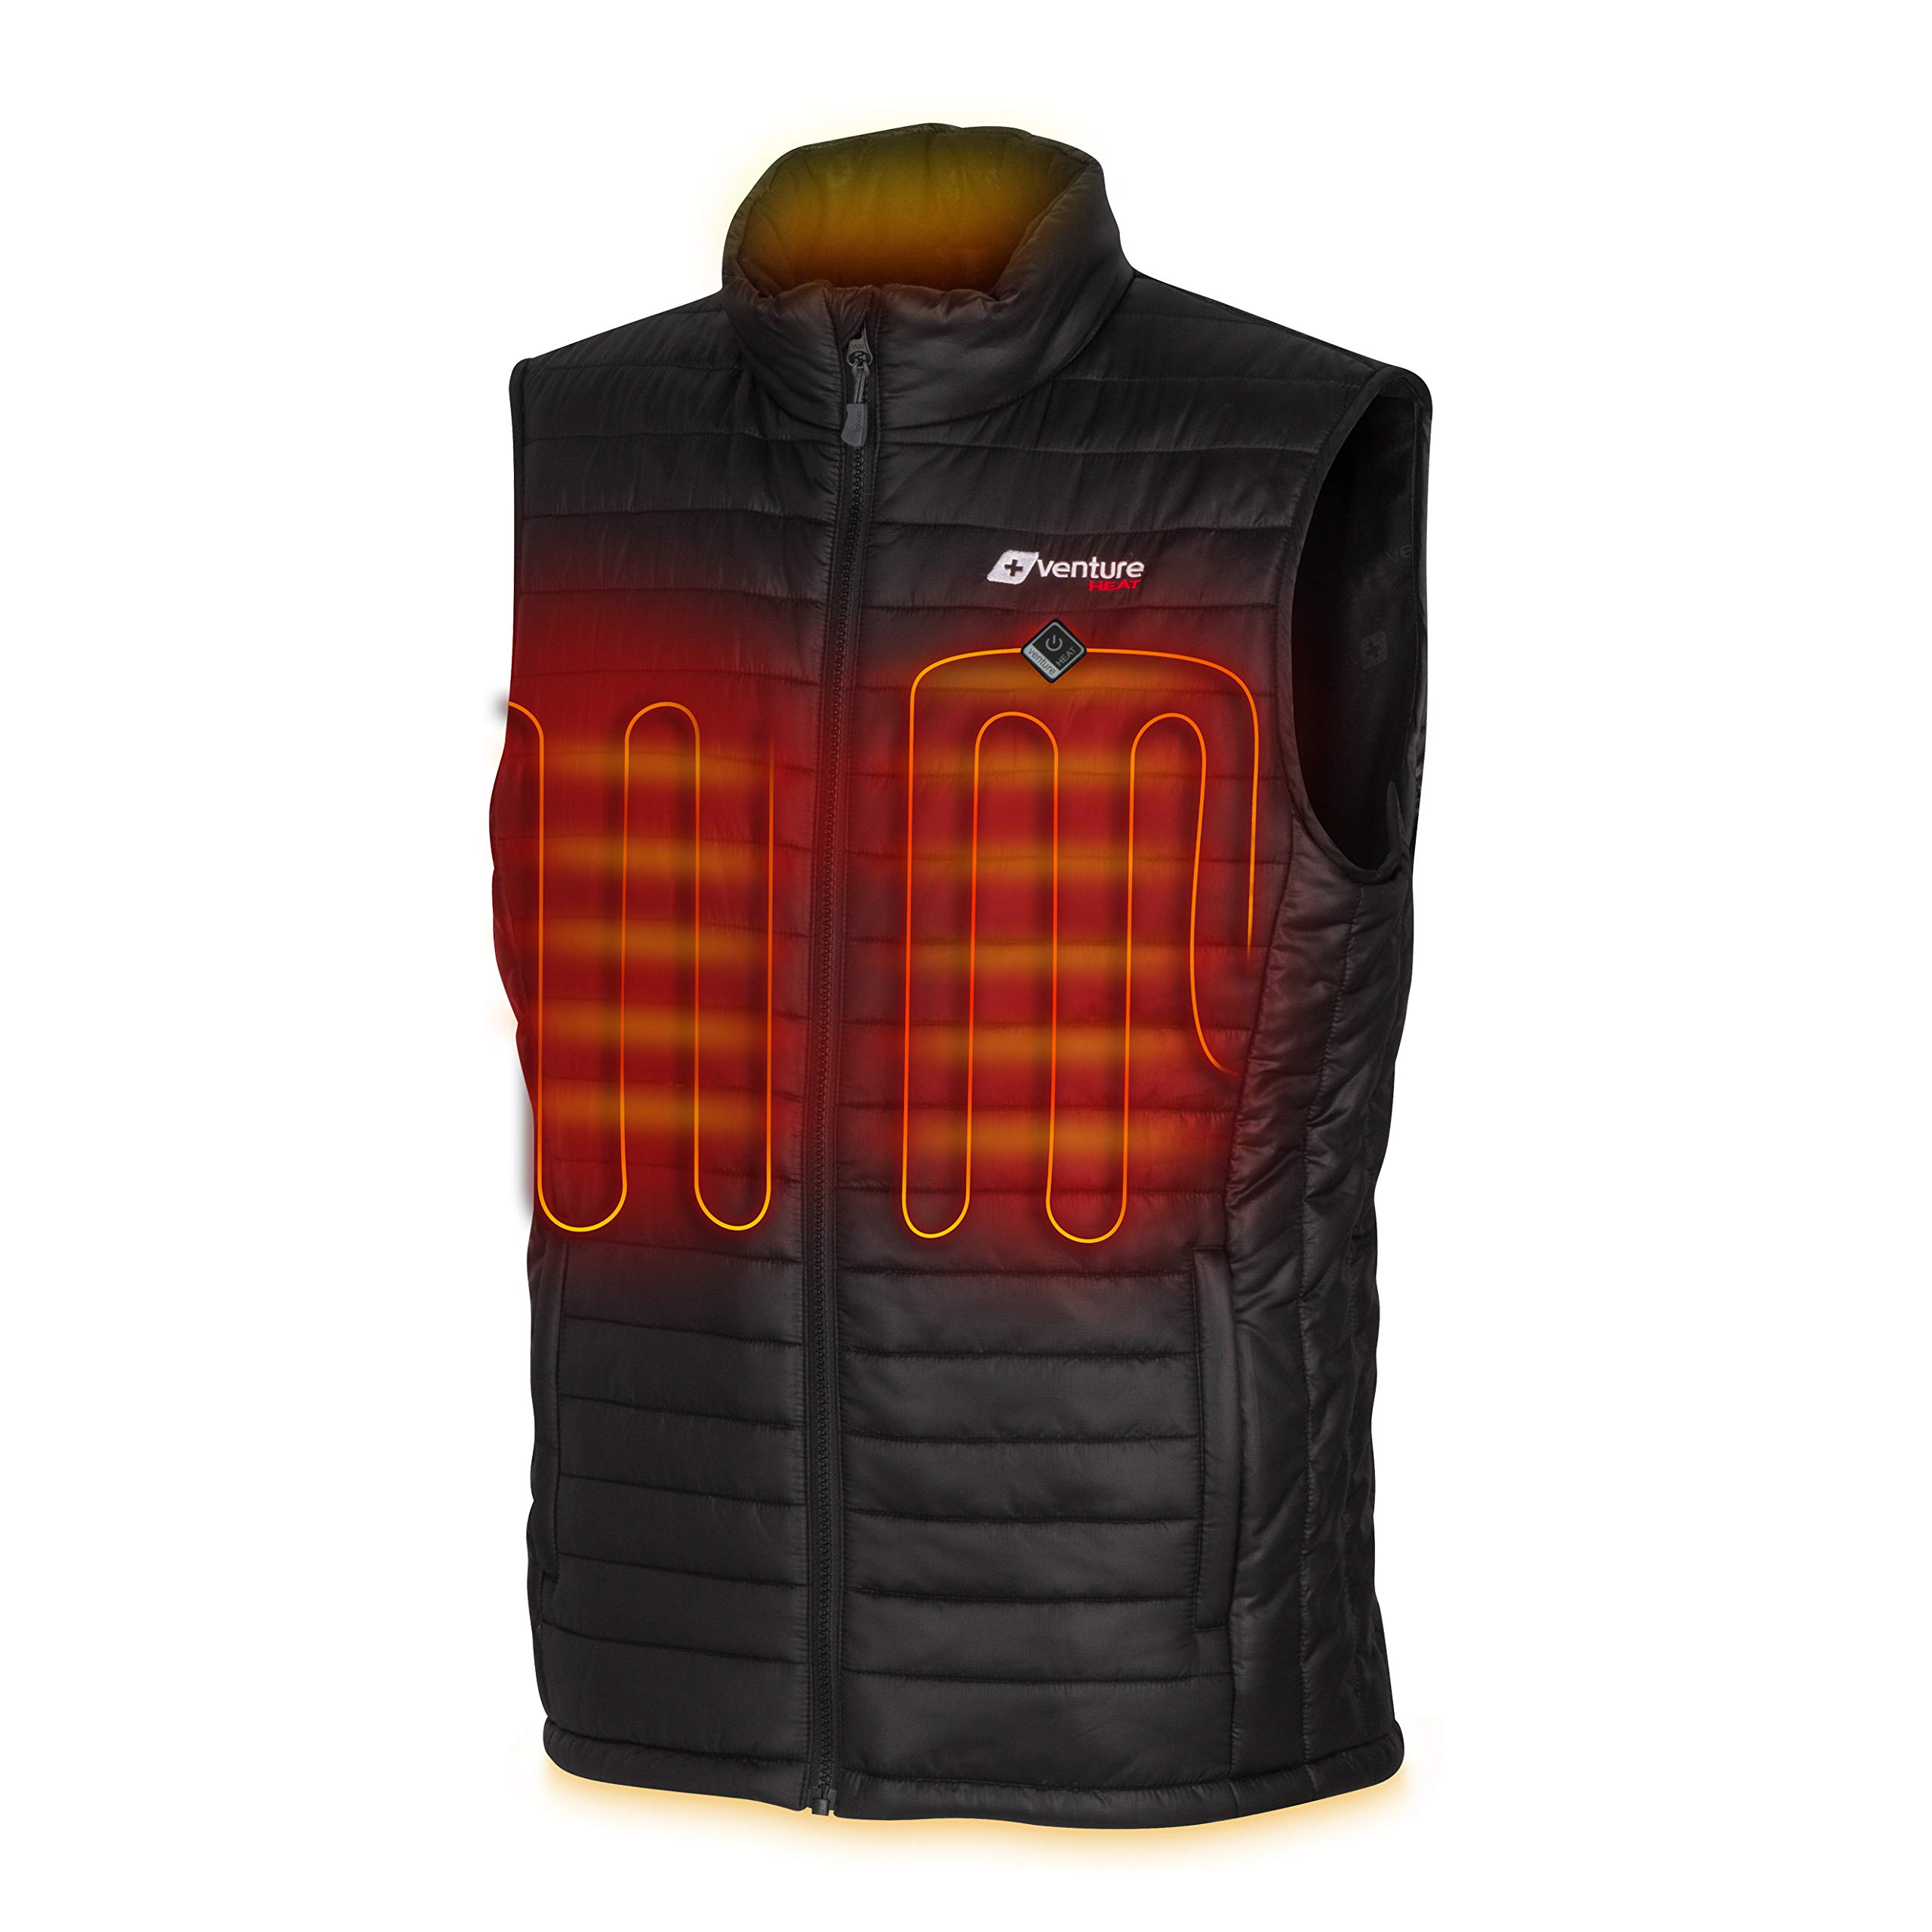 Venture Heat Men's Heated Vest with Battery Pack - Insulated Electric Jacket Puffer Layer, Roam 2.0 (M) Black by Venture Heat